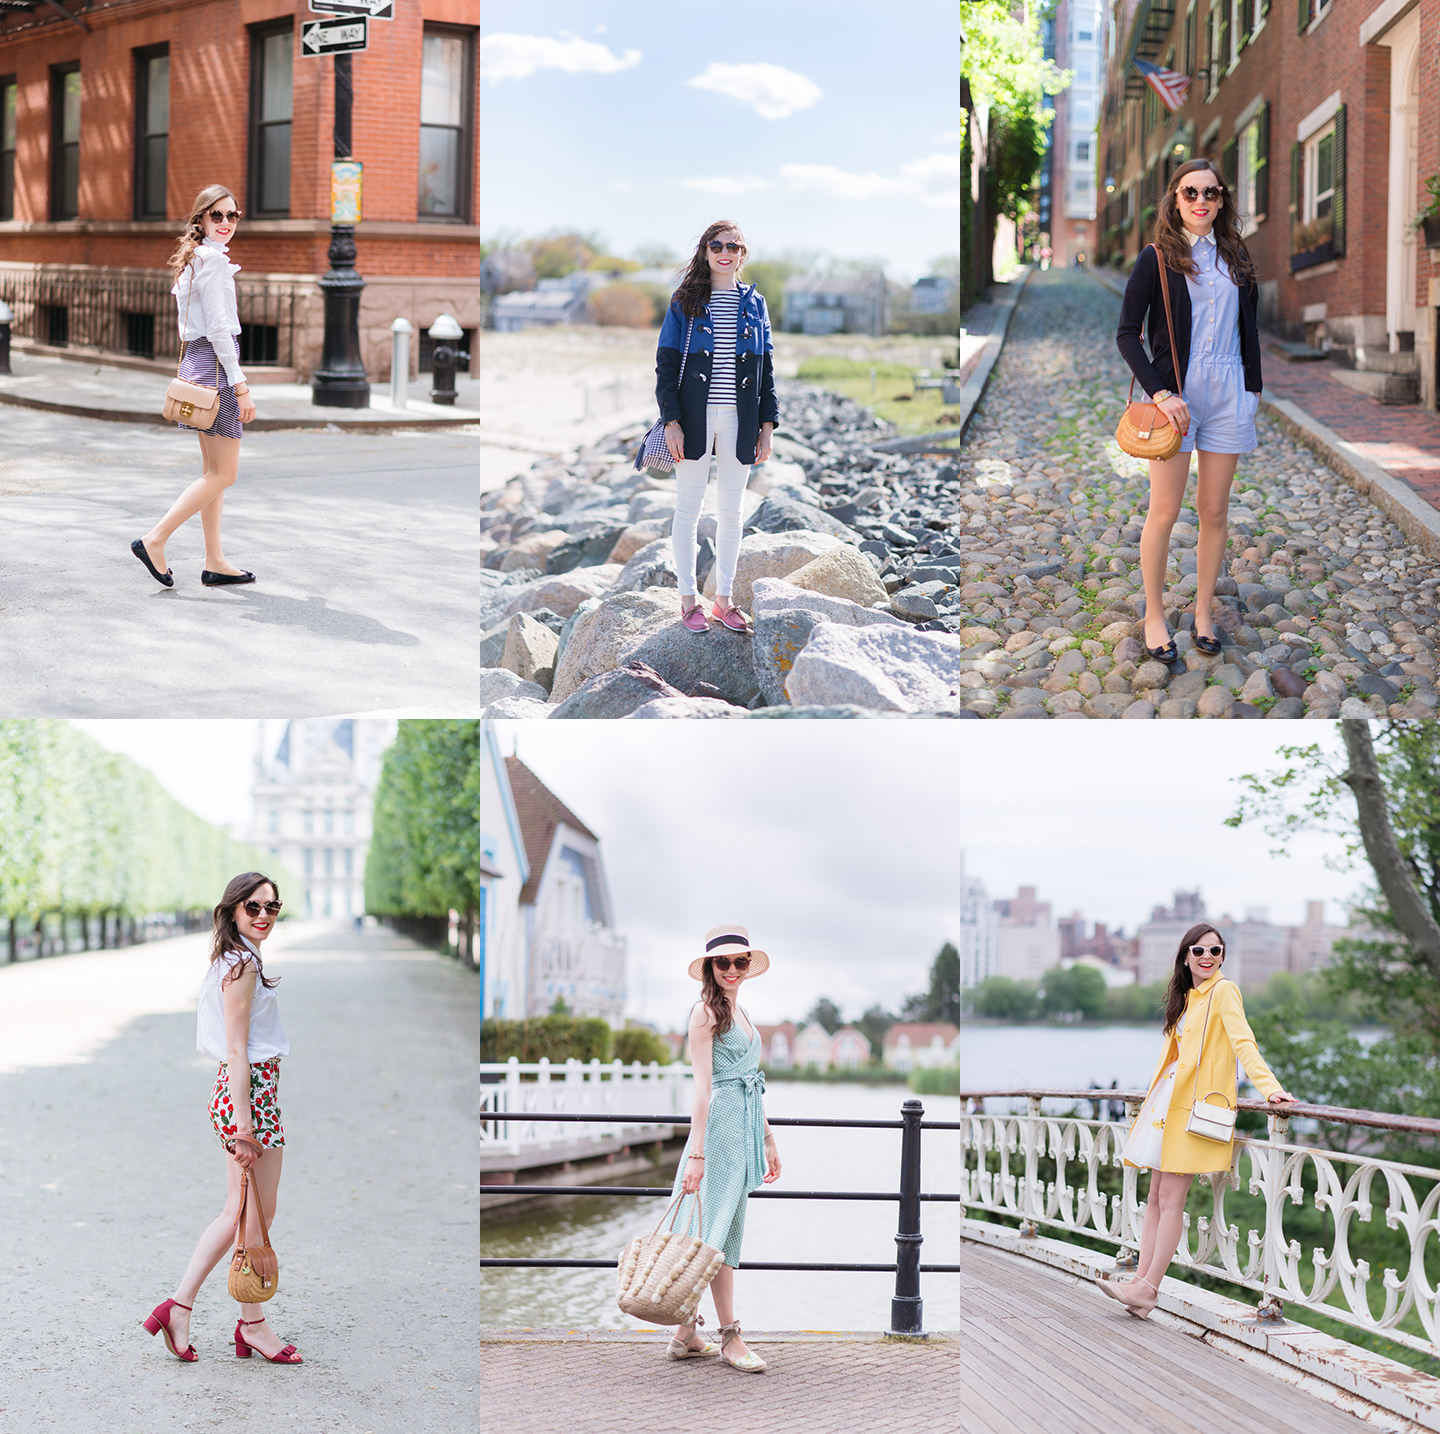 Blog-Mode-And-The-City-Looks-Best-Of-2016-Meilleurs-Looks-Juin-2016